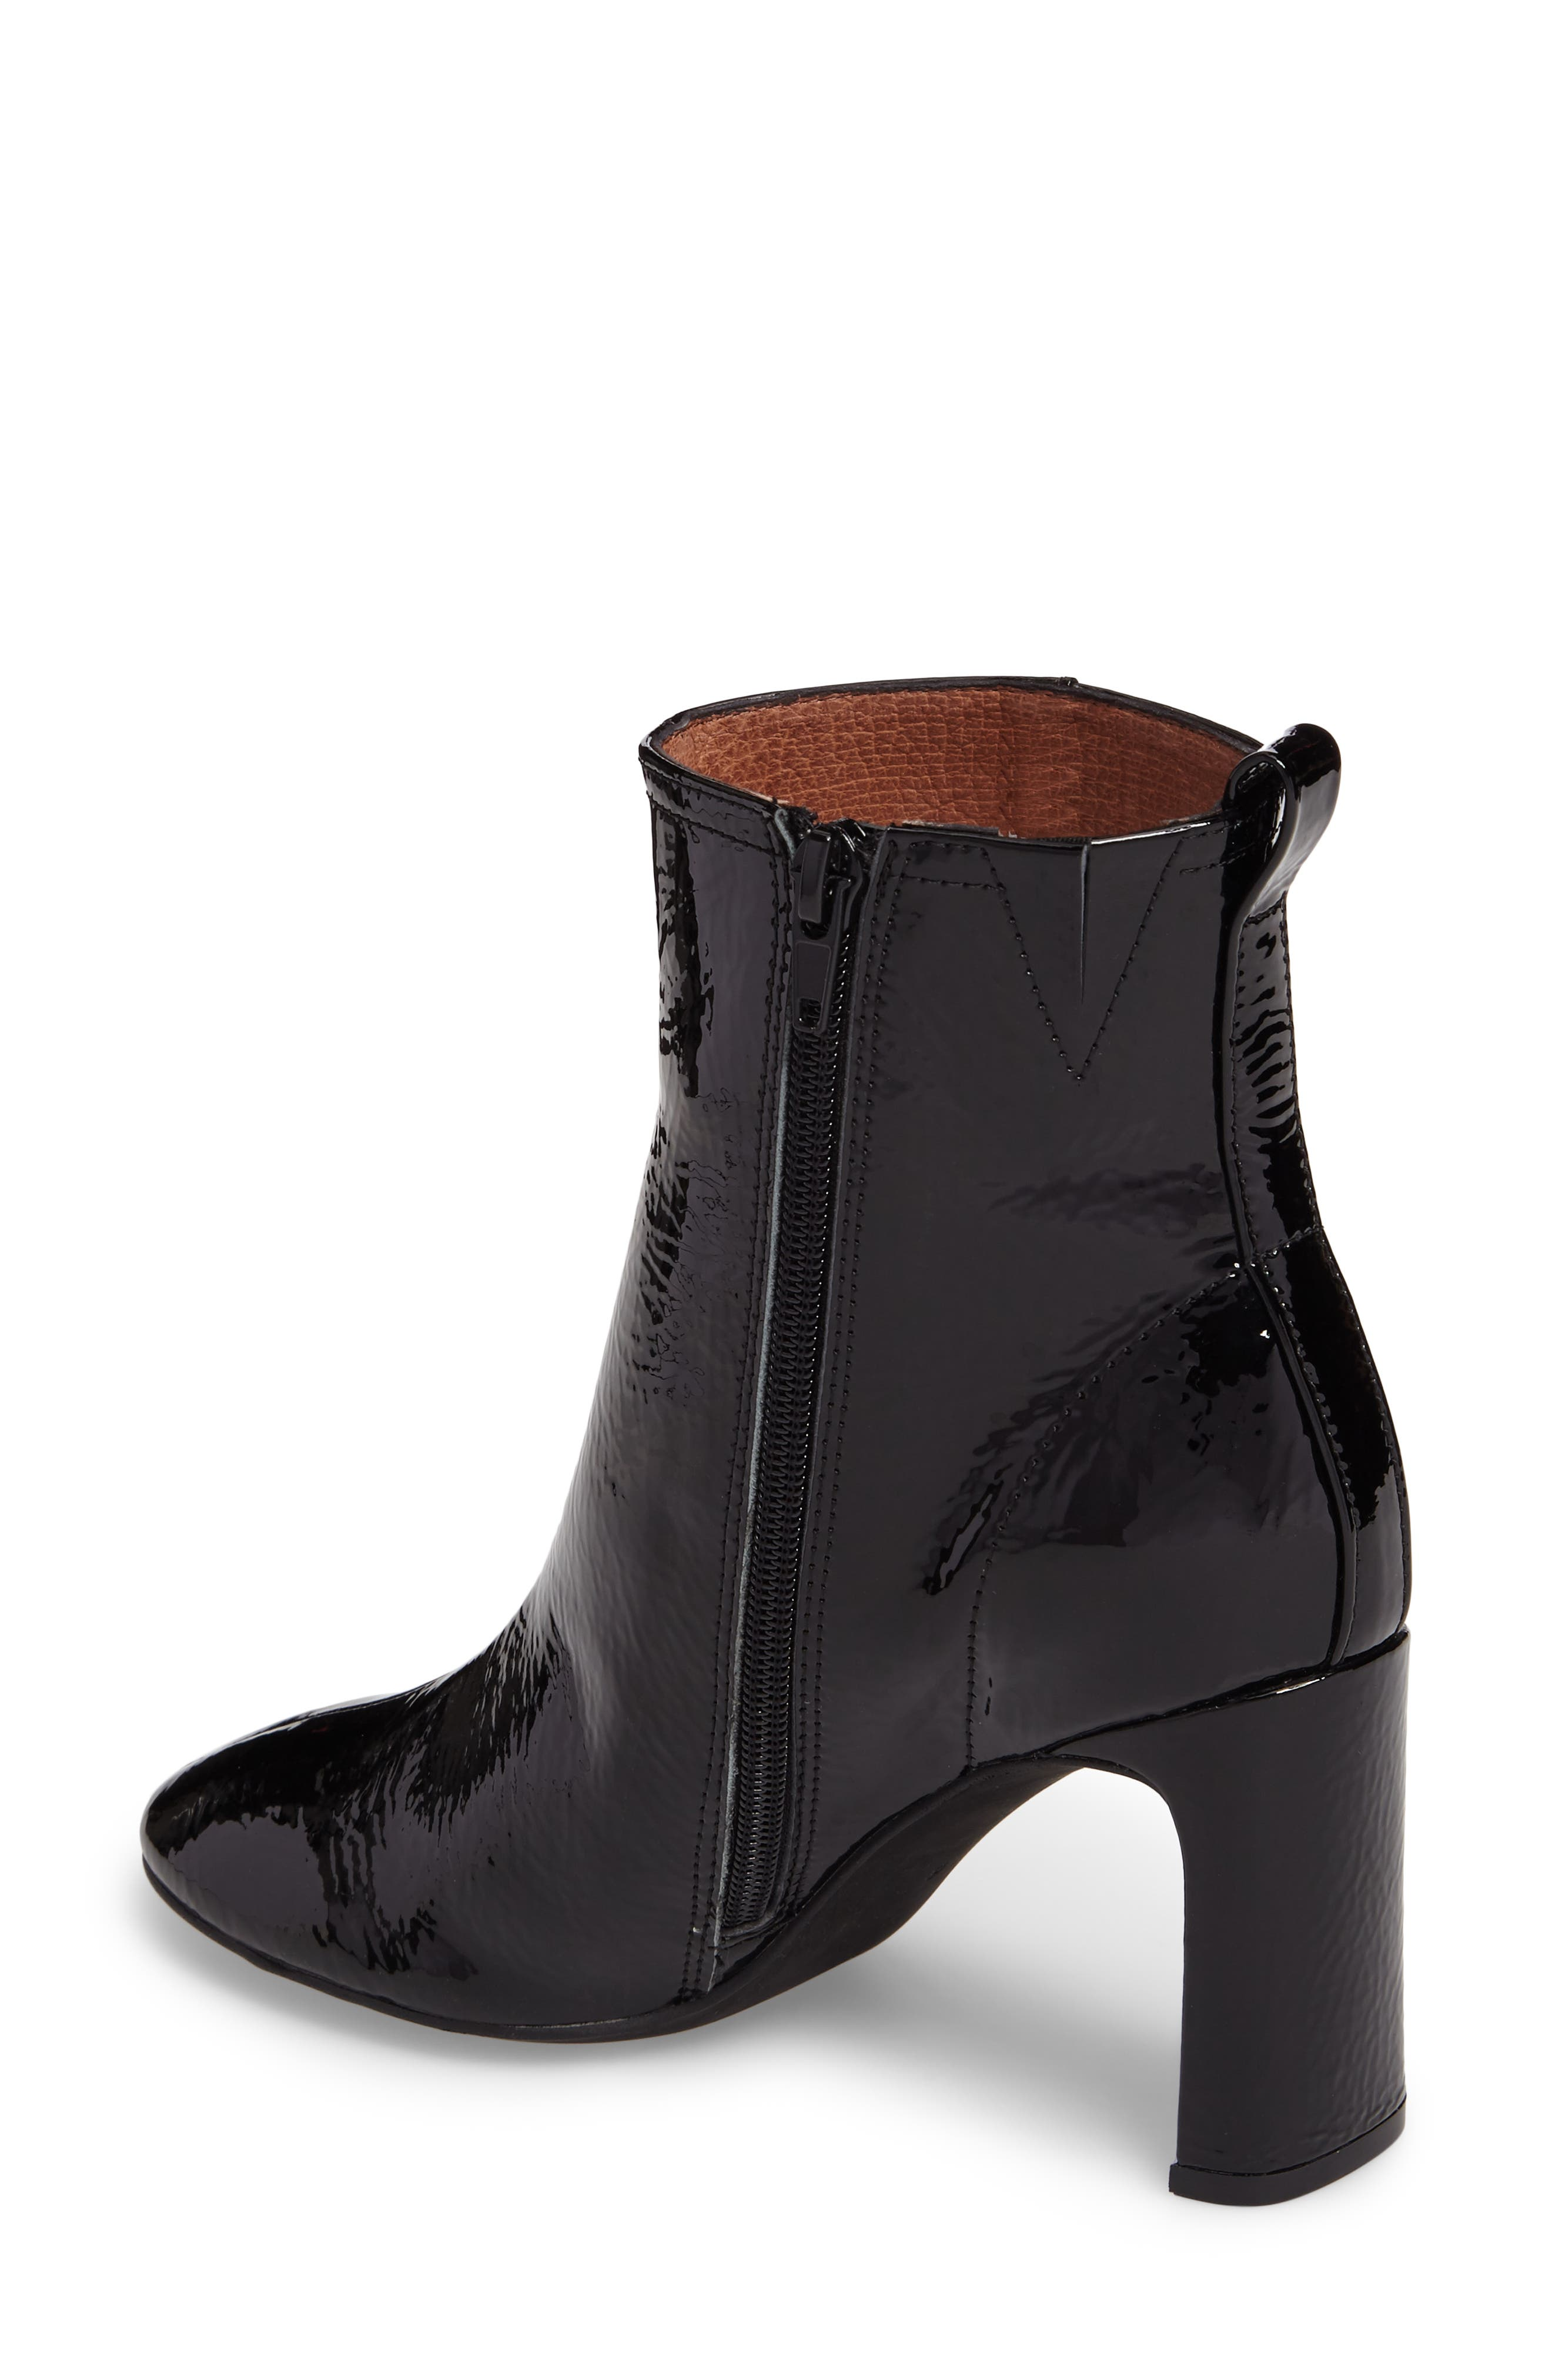 Chapel Curved Heel Bootie,                             Alternate thumbnail 2, color,                             Black Crinkle Patent